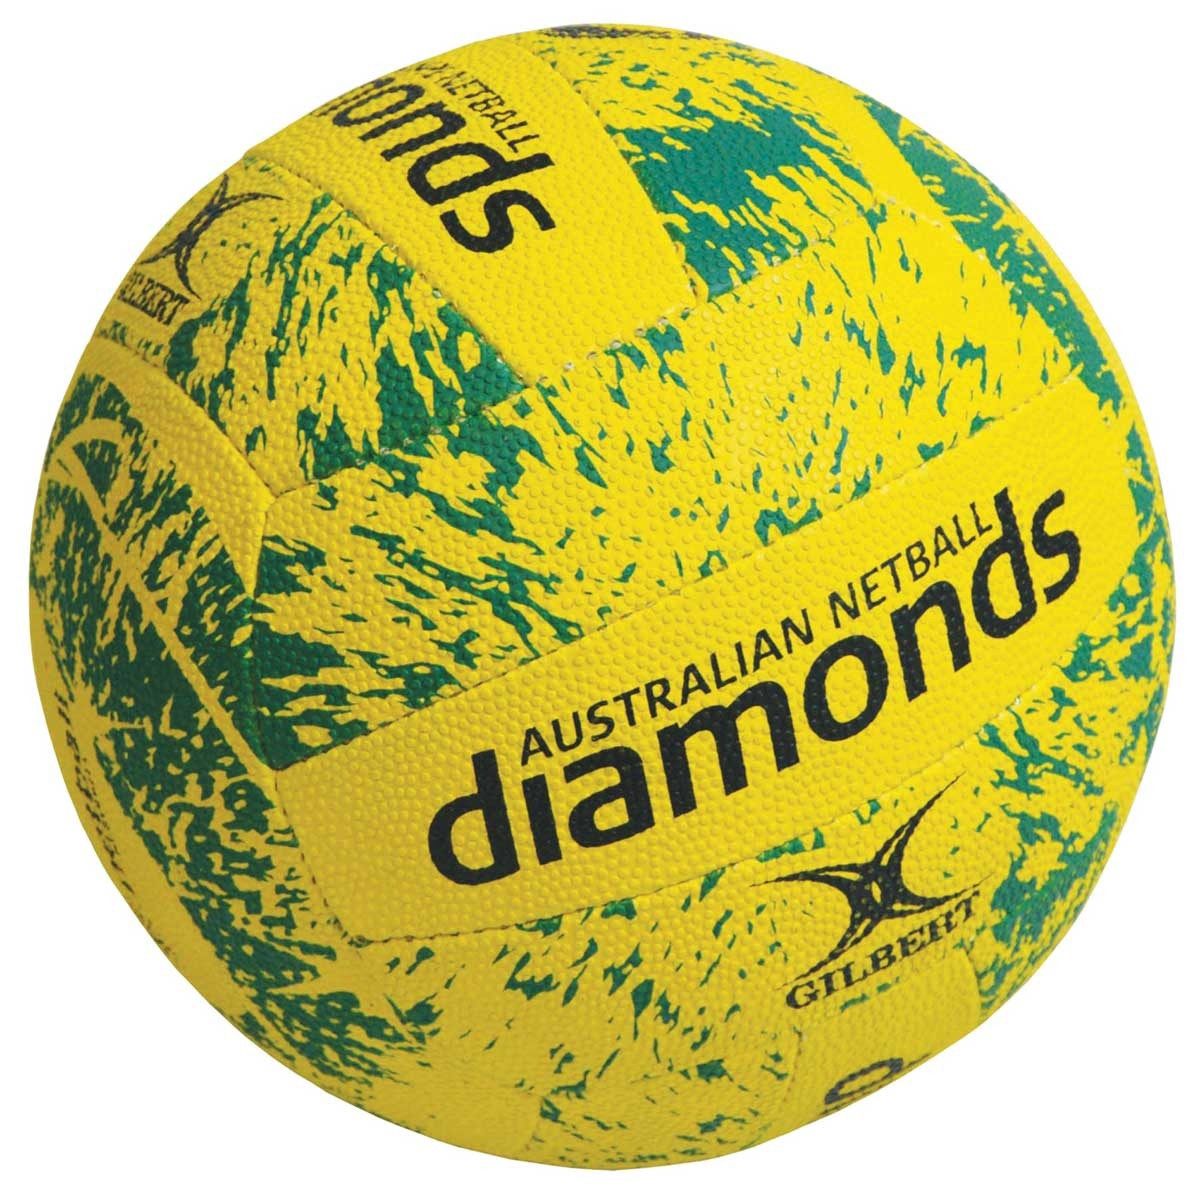 Gilbert Supporter Ball - Diamonds: Yellow & Green (size 5)